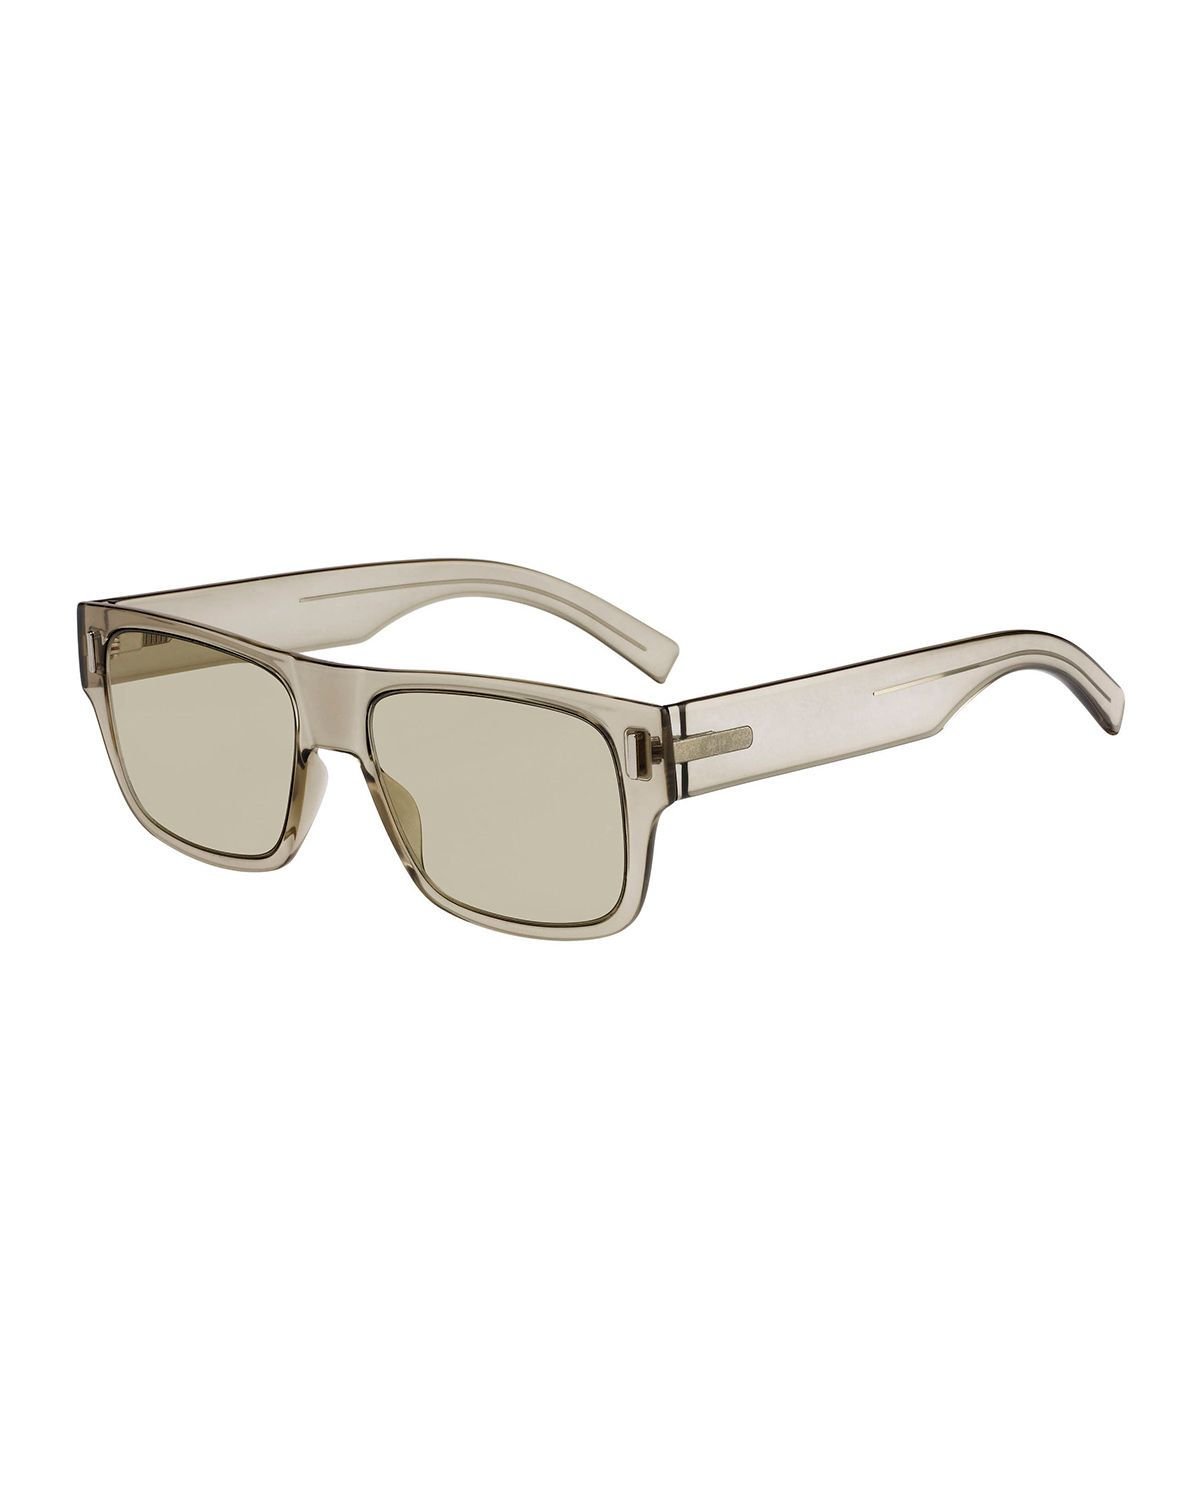 7140b6e16a08 DIOR MEN S FRACTION 4 FLAT-TOP NYLON SUNGLASSES.  dior